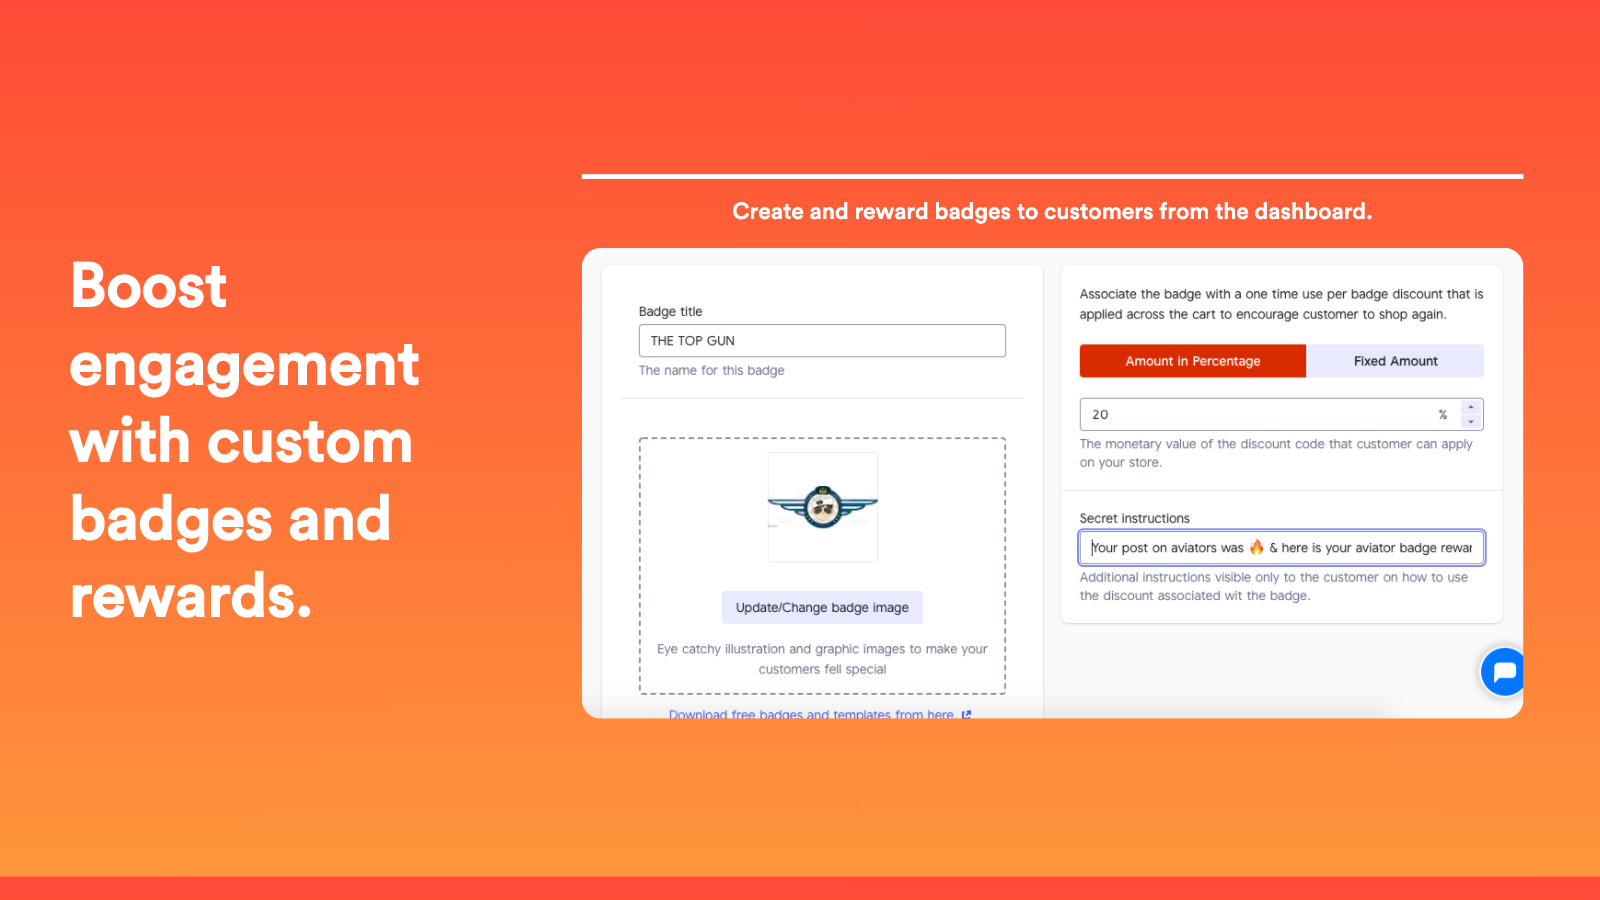 Create and reward badges to customers from the dashboard.